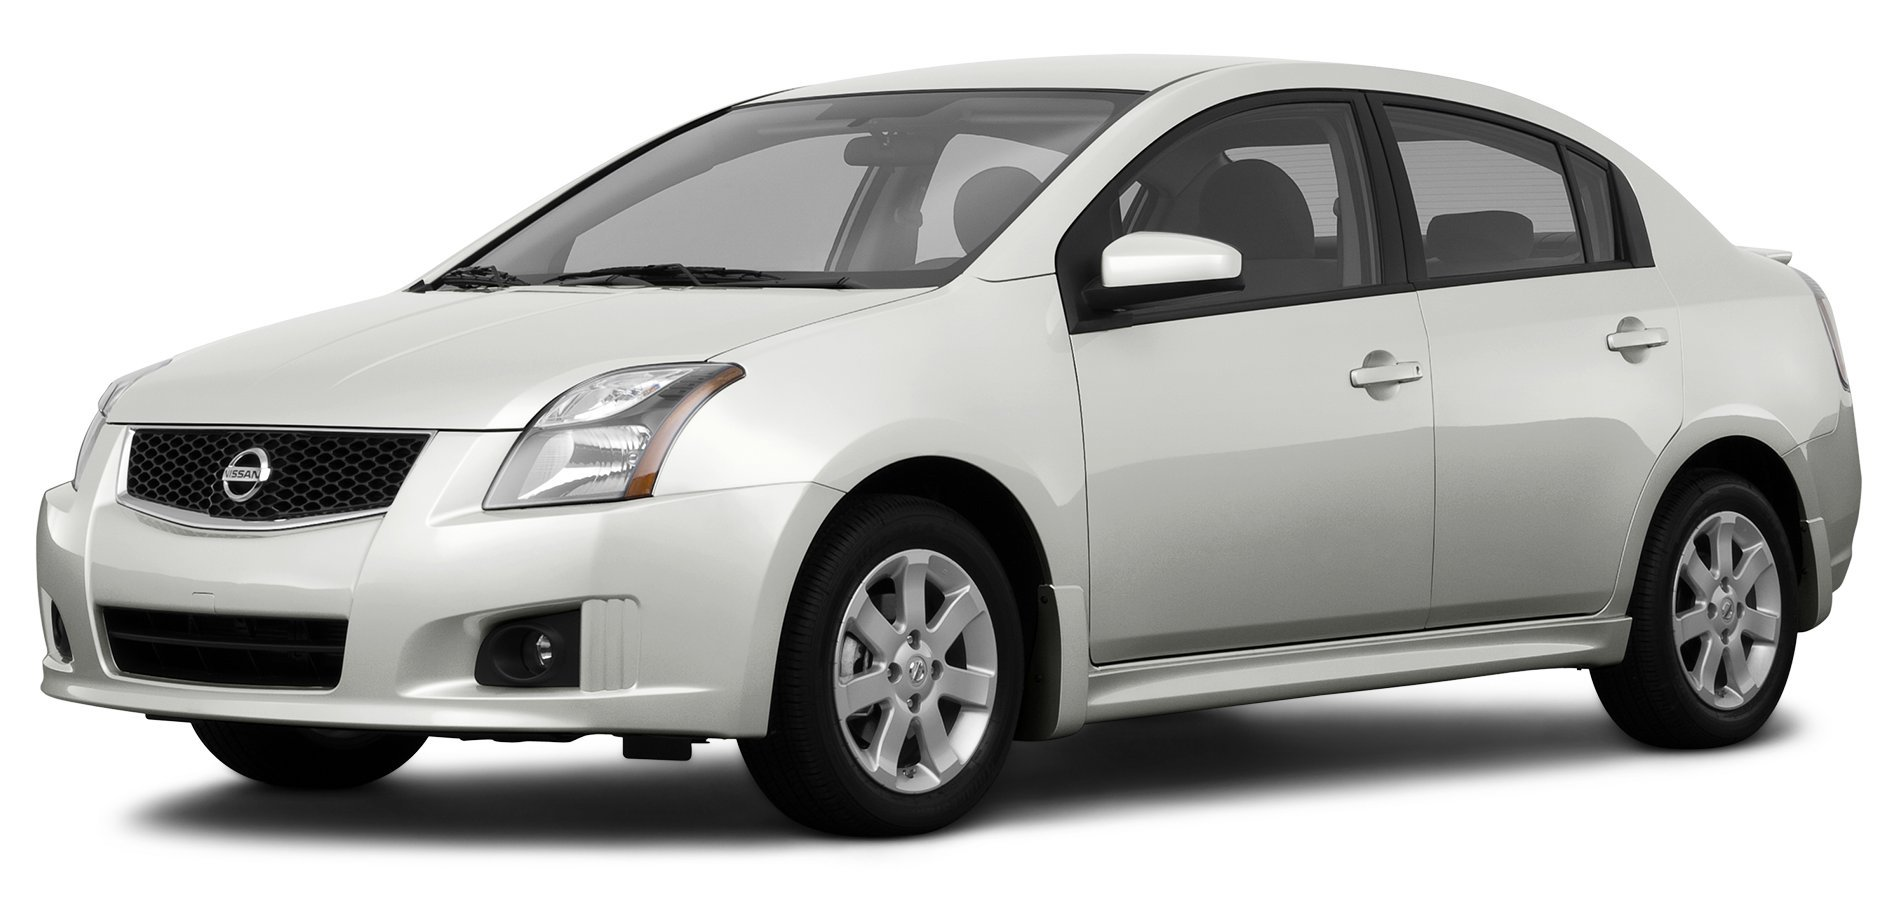 Amazon.com: 2011 Nissan Sentra Reviews, Images, and Specs: Vehicles